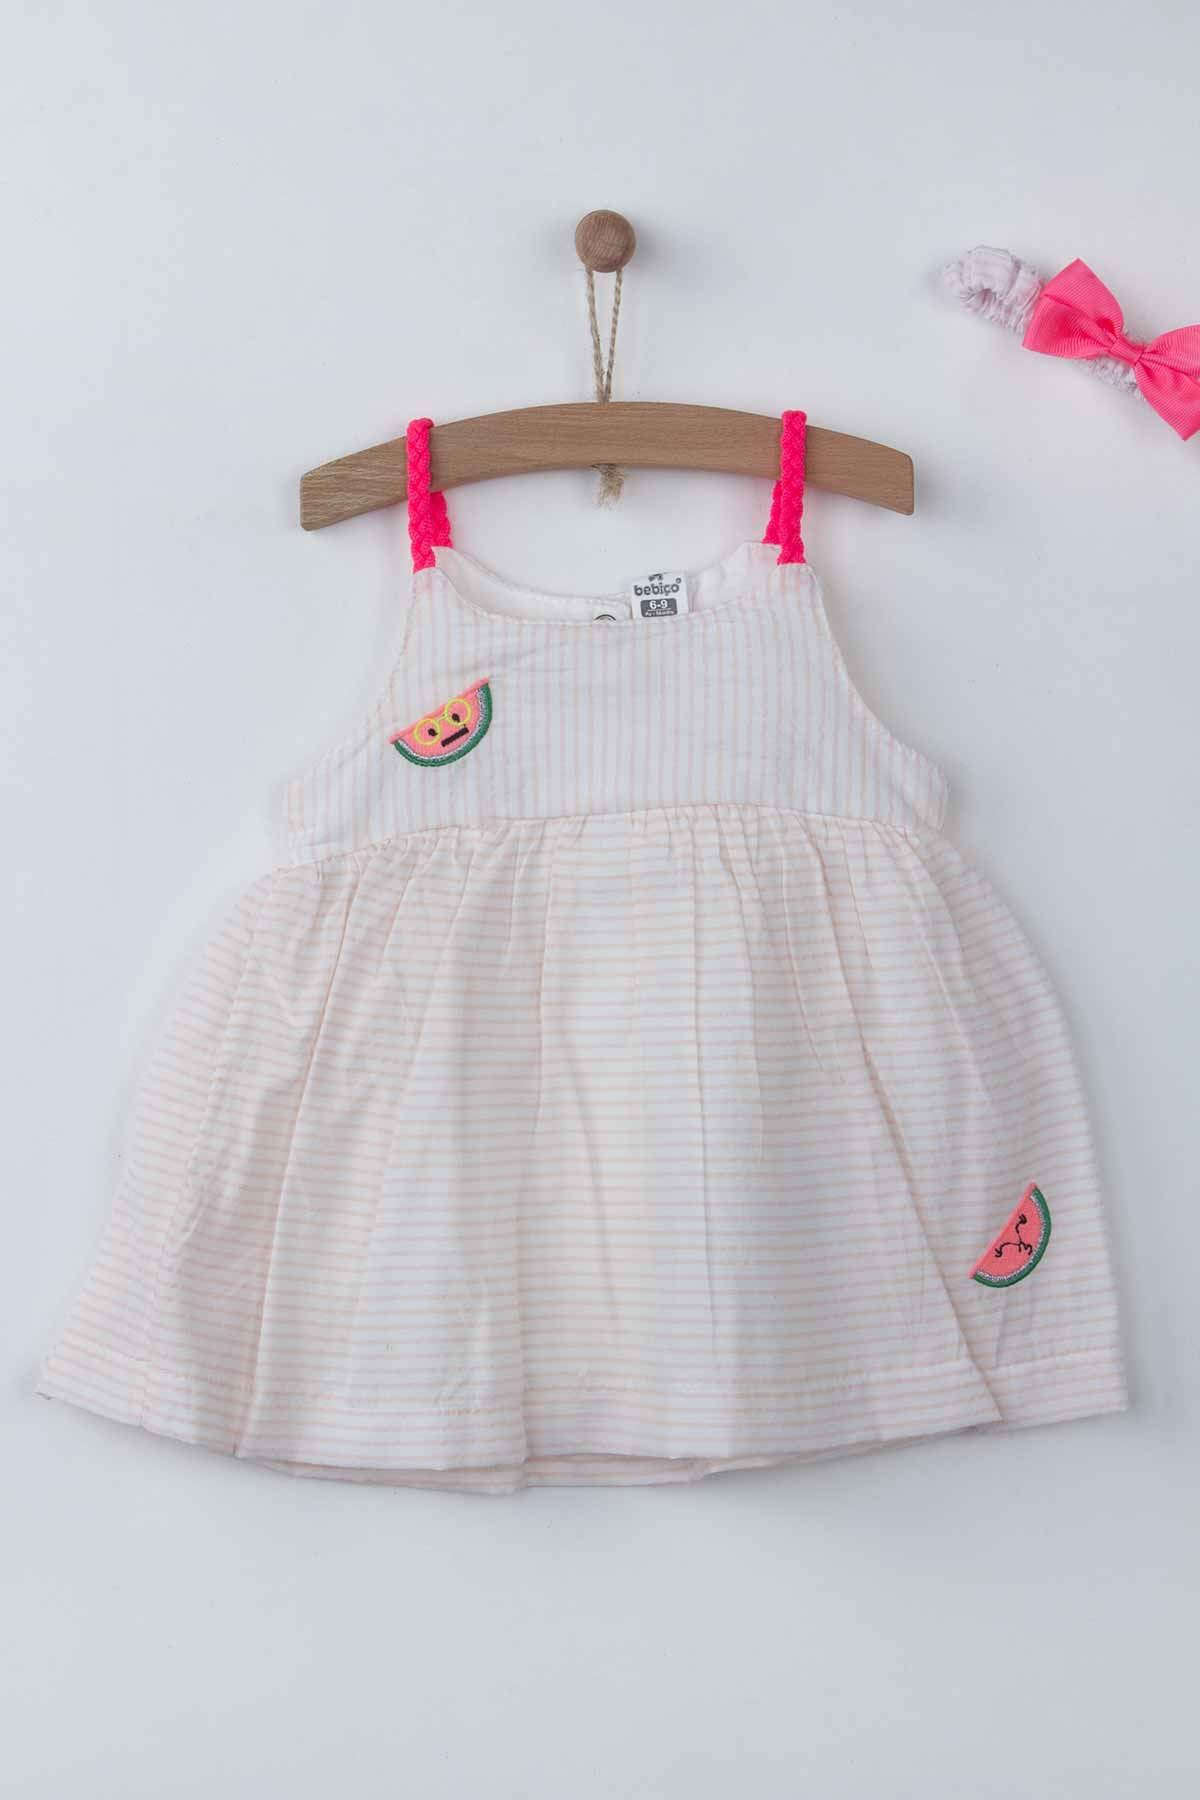 Powder Pink Baby Girl Dress Summer 2-piece Suit Clothes Set Dress Hairband Cute Cute Babies outfit Holiday Beach wear Clothing